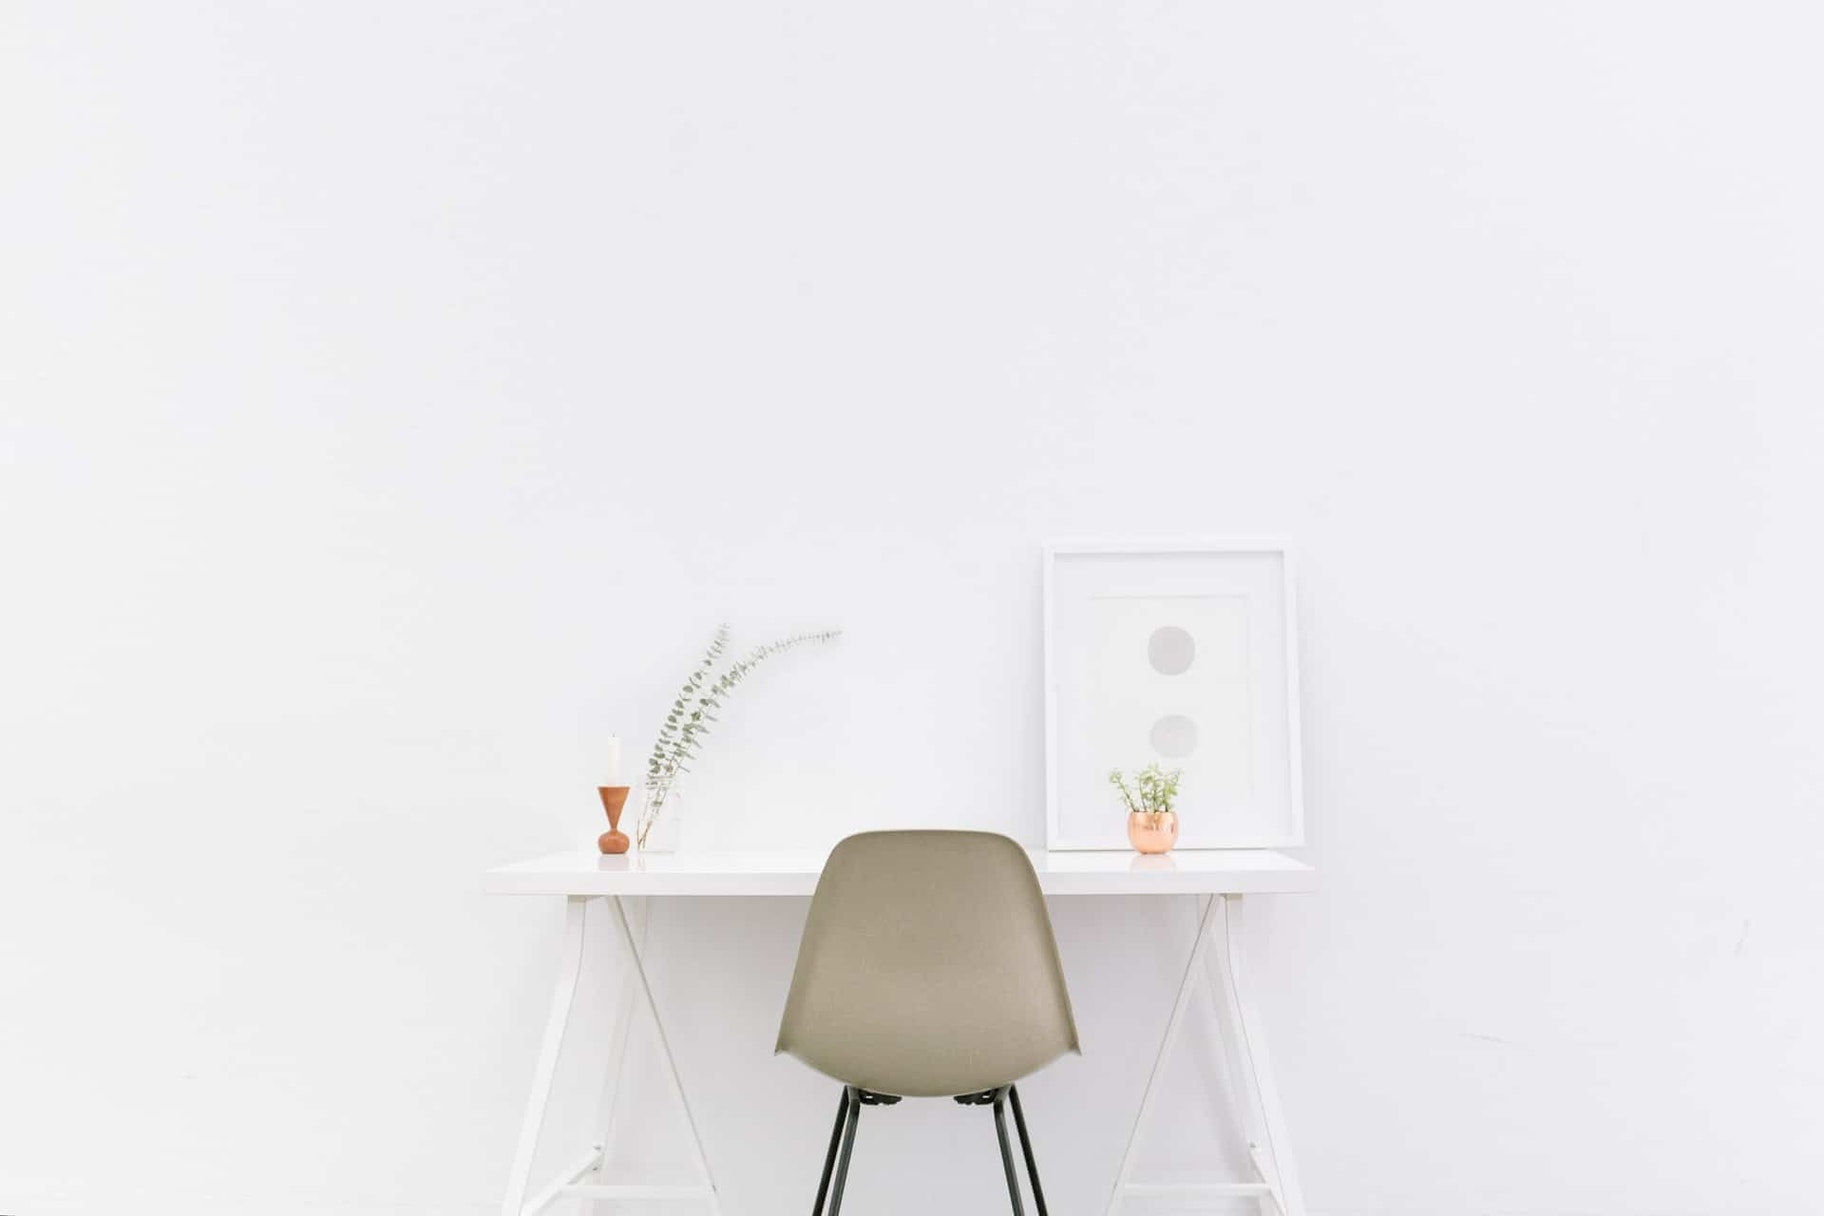 Minimalism 101: Minimalist Home Office Setup via Unsplash